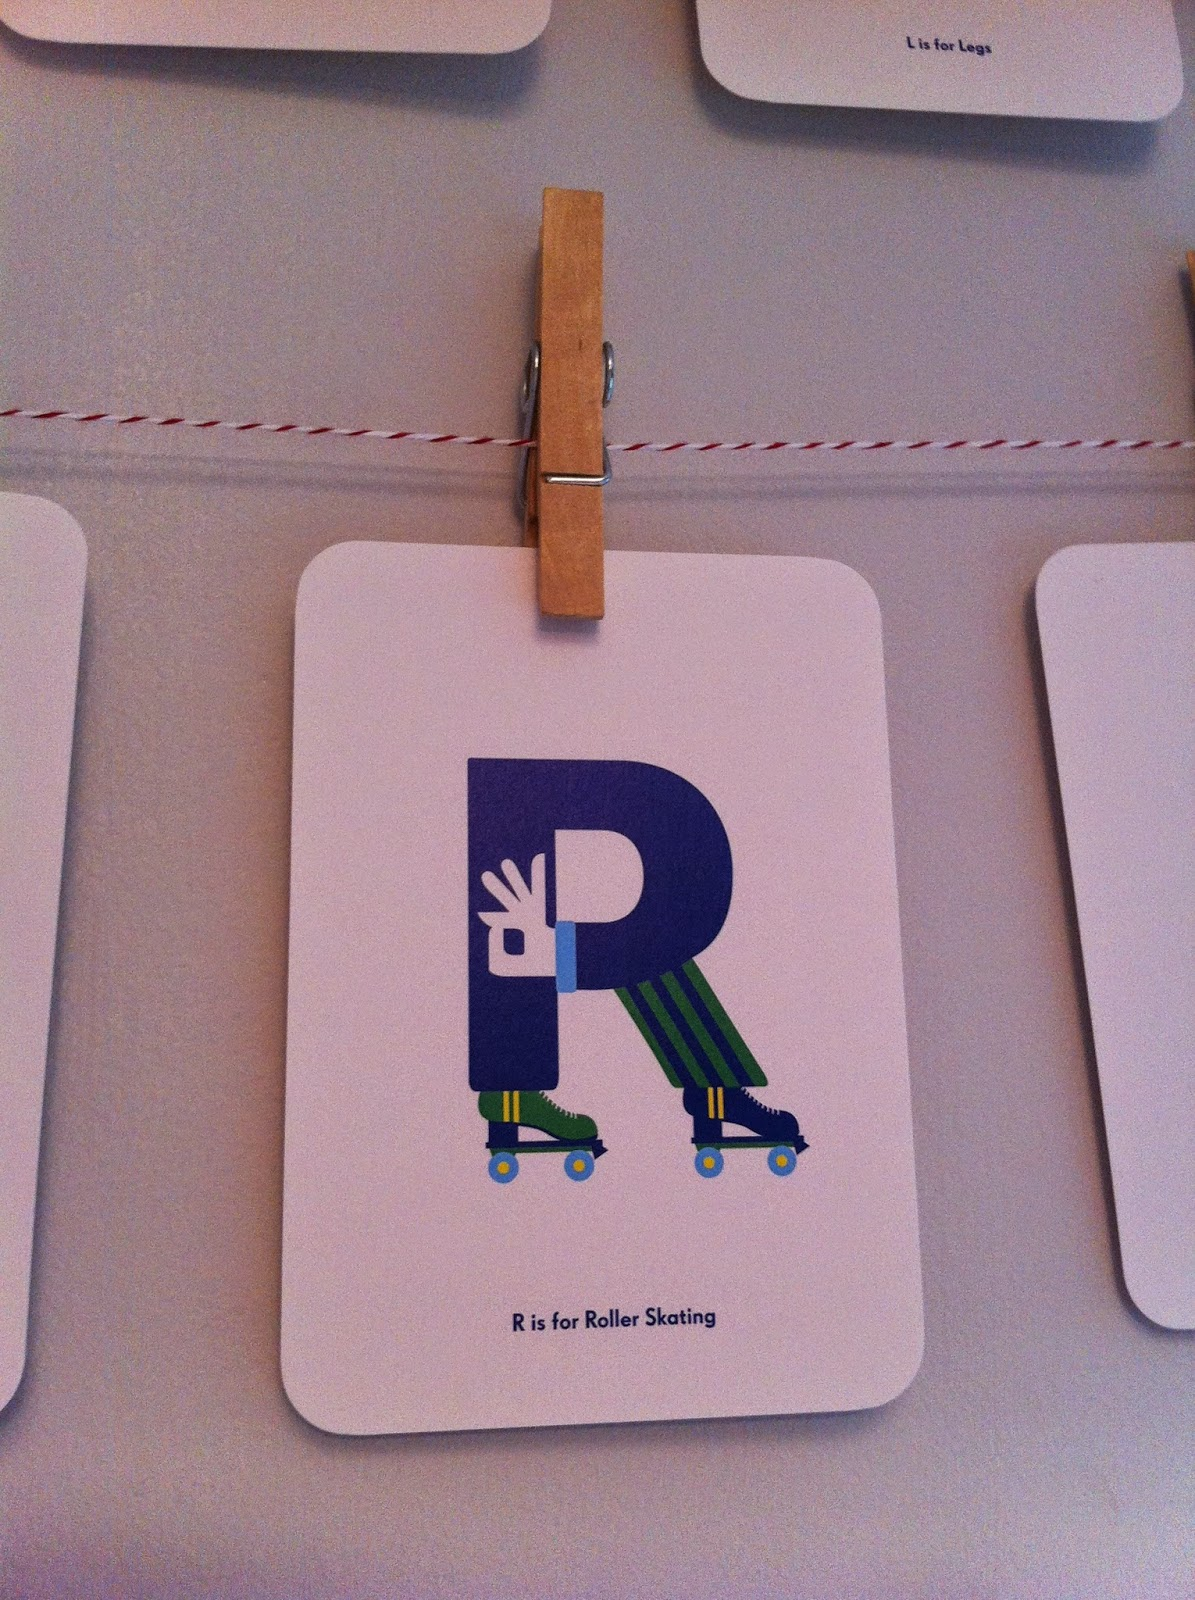 Nursery Names aphabet card R for Roller skating